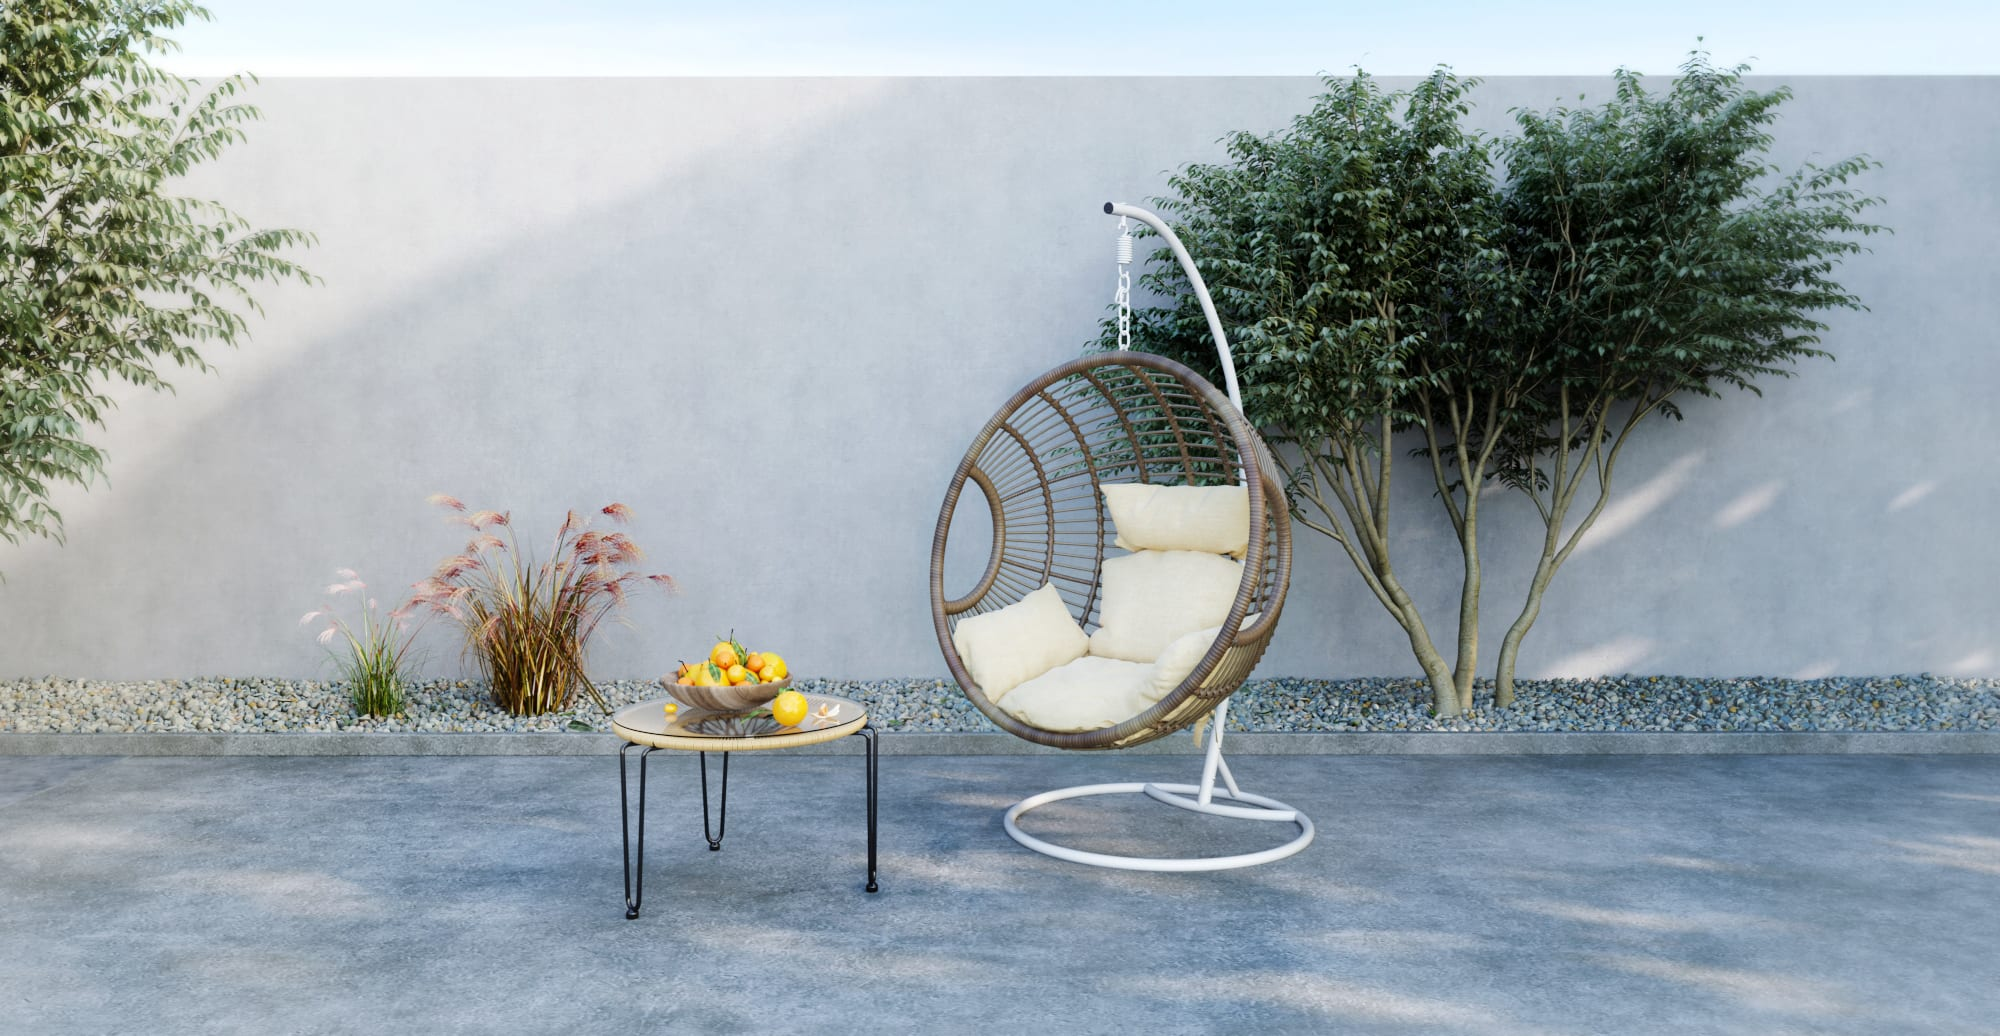 Riviera Outdoor Hanging Chair Riviera Outdoor Hanging Chair, White Change $749.00 ADD TO CART Riviera Outdoor Hanging Chair